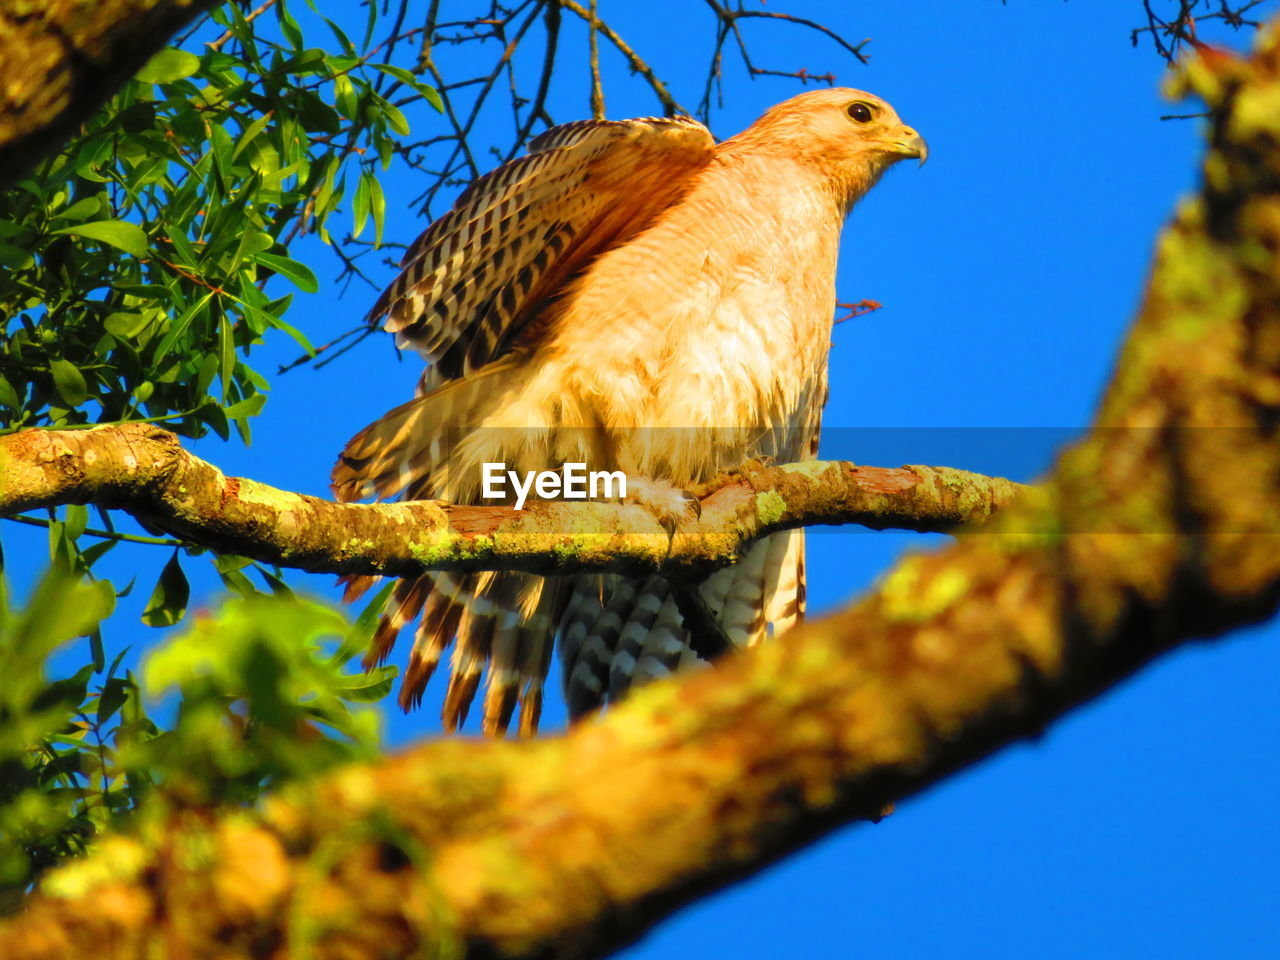 bird, animal, animal themes, branch, tree, vertebrate, animals in the wild, animal wildlife, one animal, low angle view, perching, plant, nature, sky, no people, day, blue, sunlight, selective focus, clear sky, outdoors